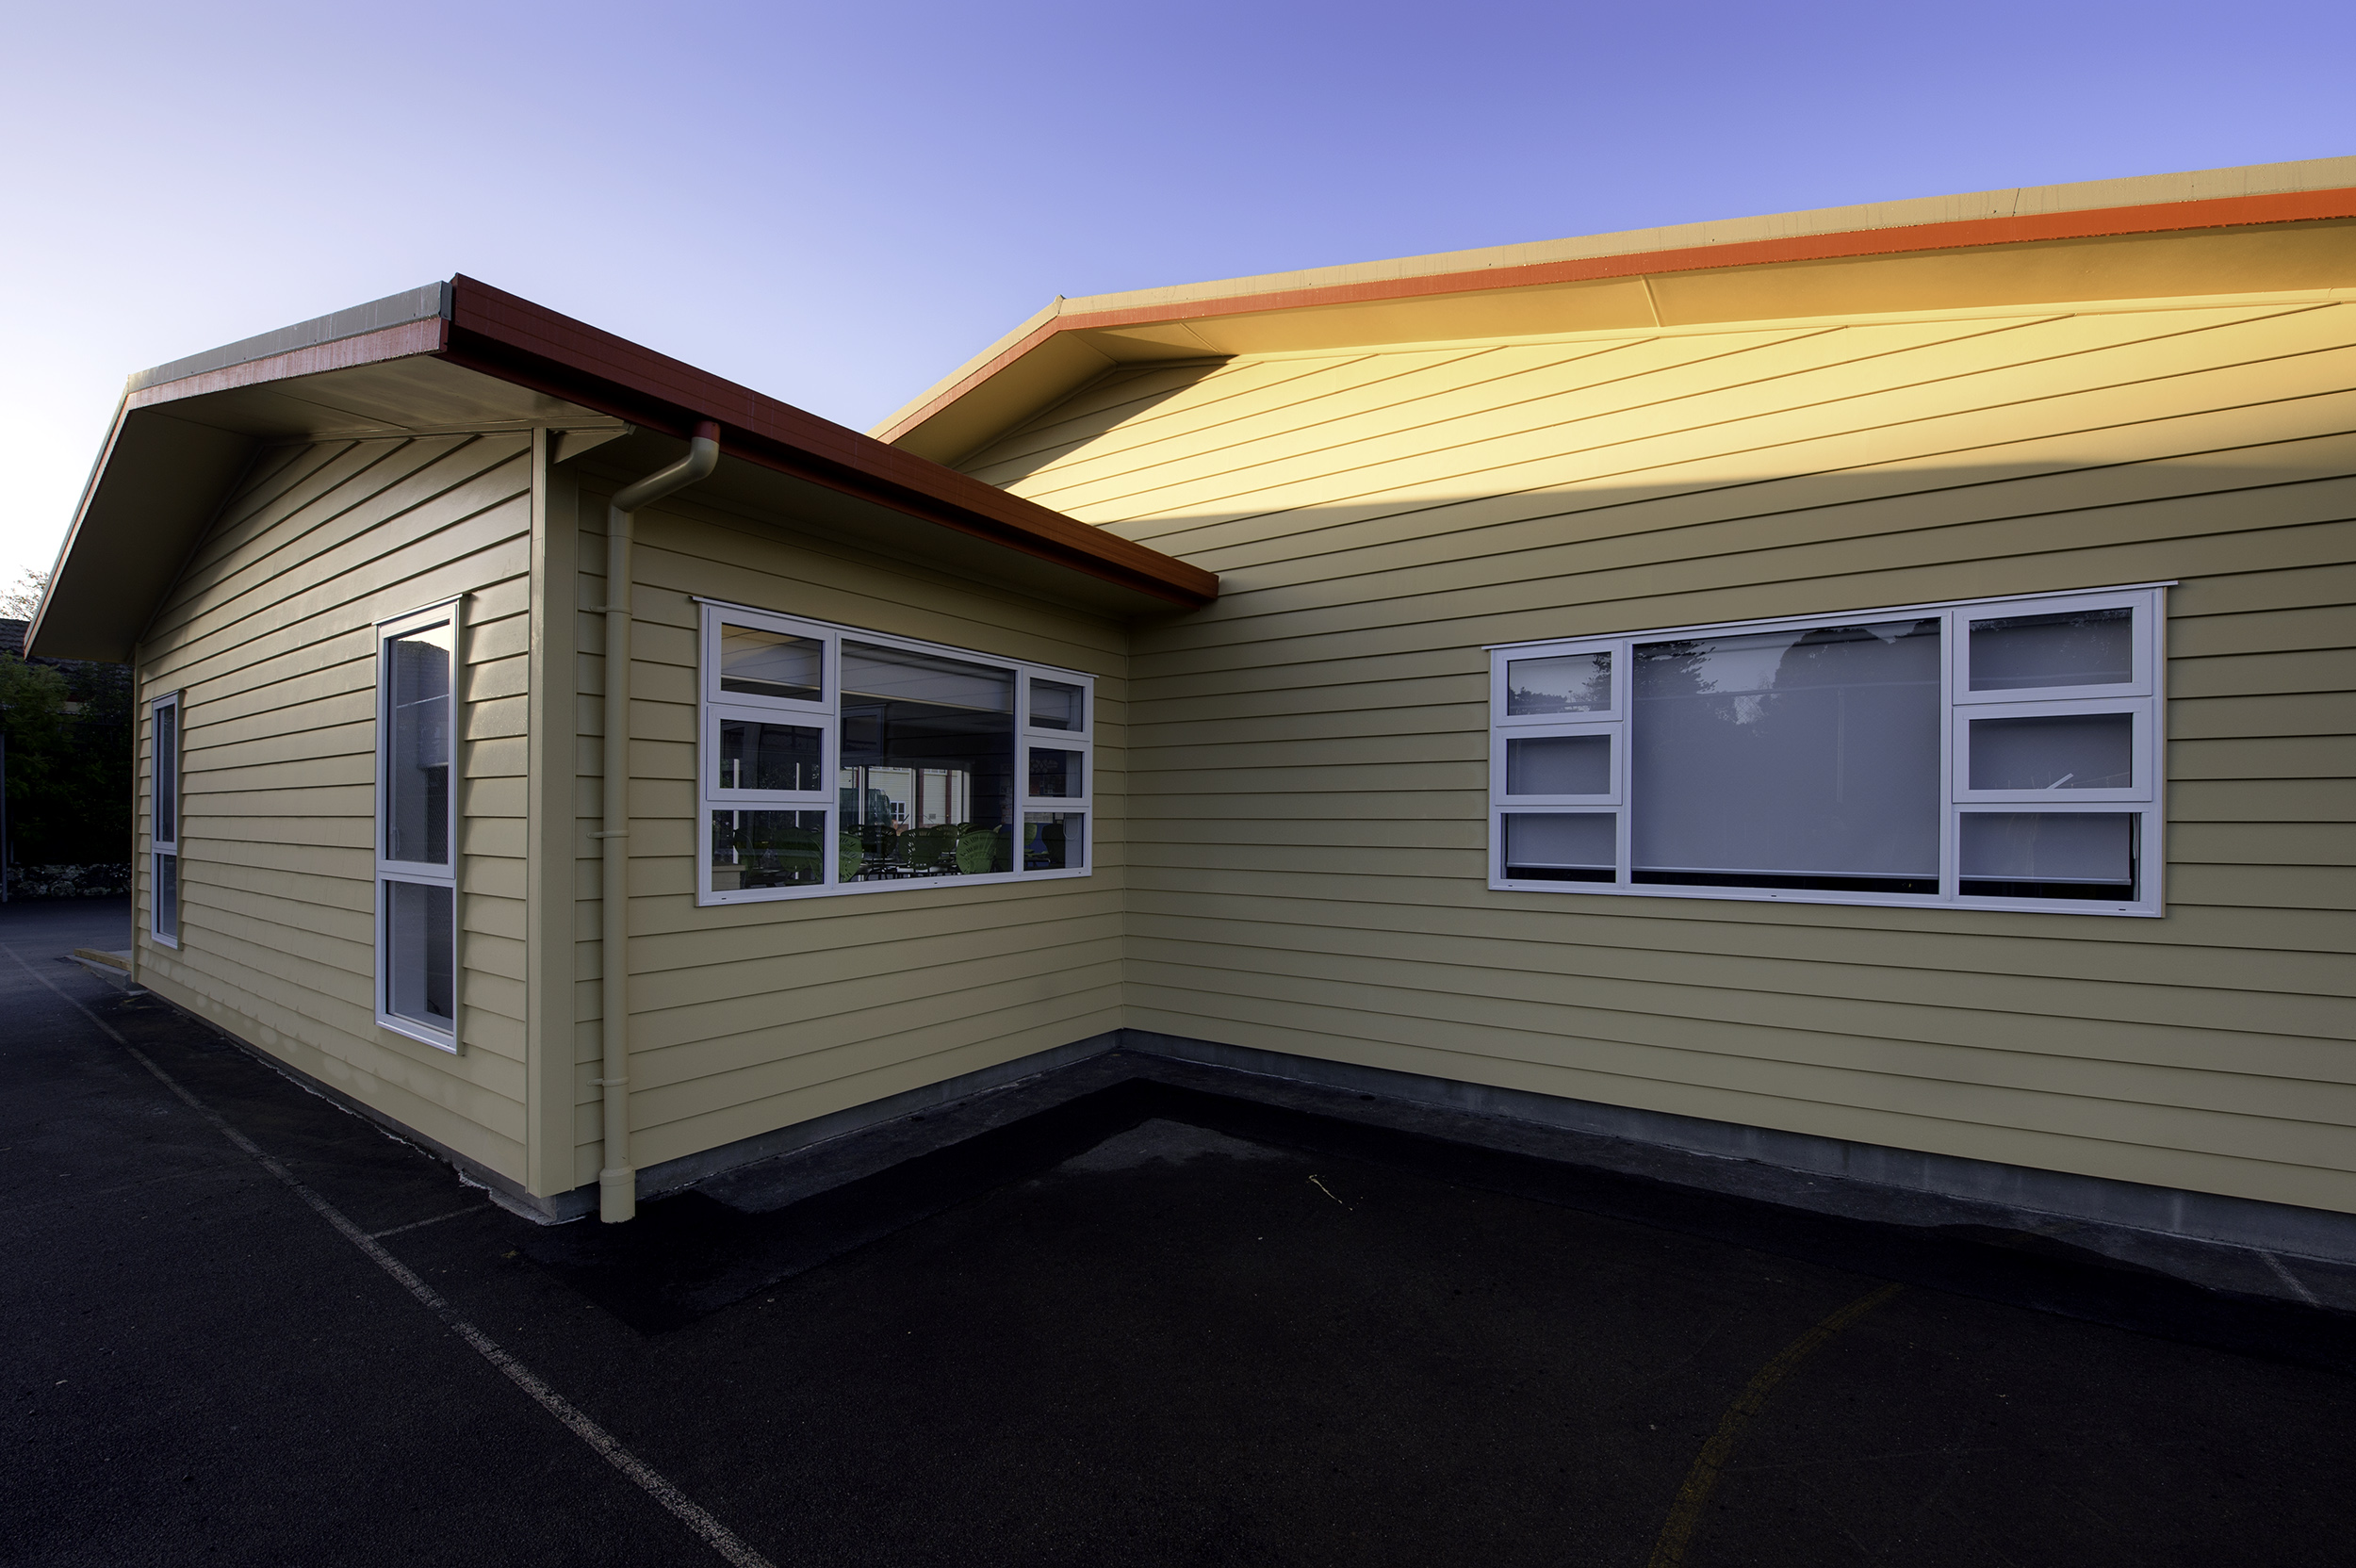 Whangarei Girls High School - Health & PE Classroom Block Construction